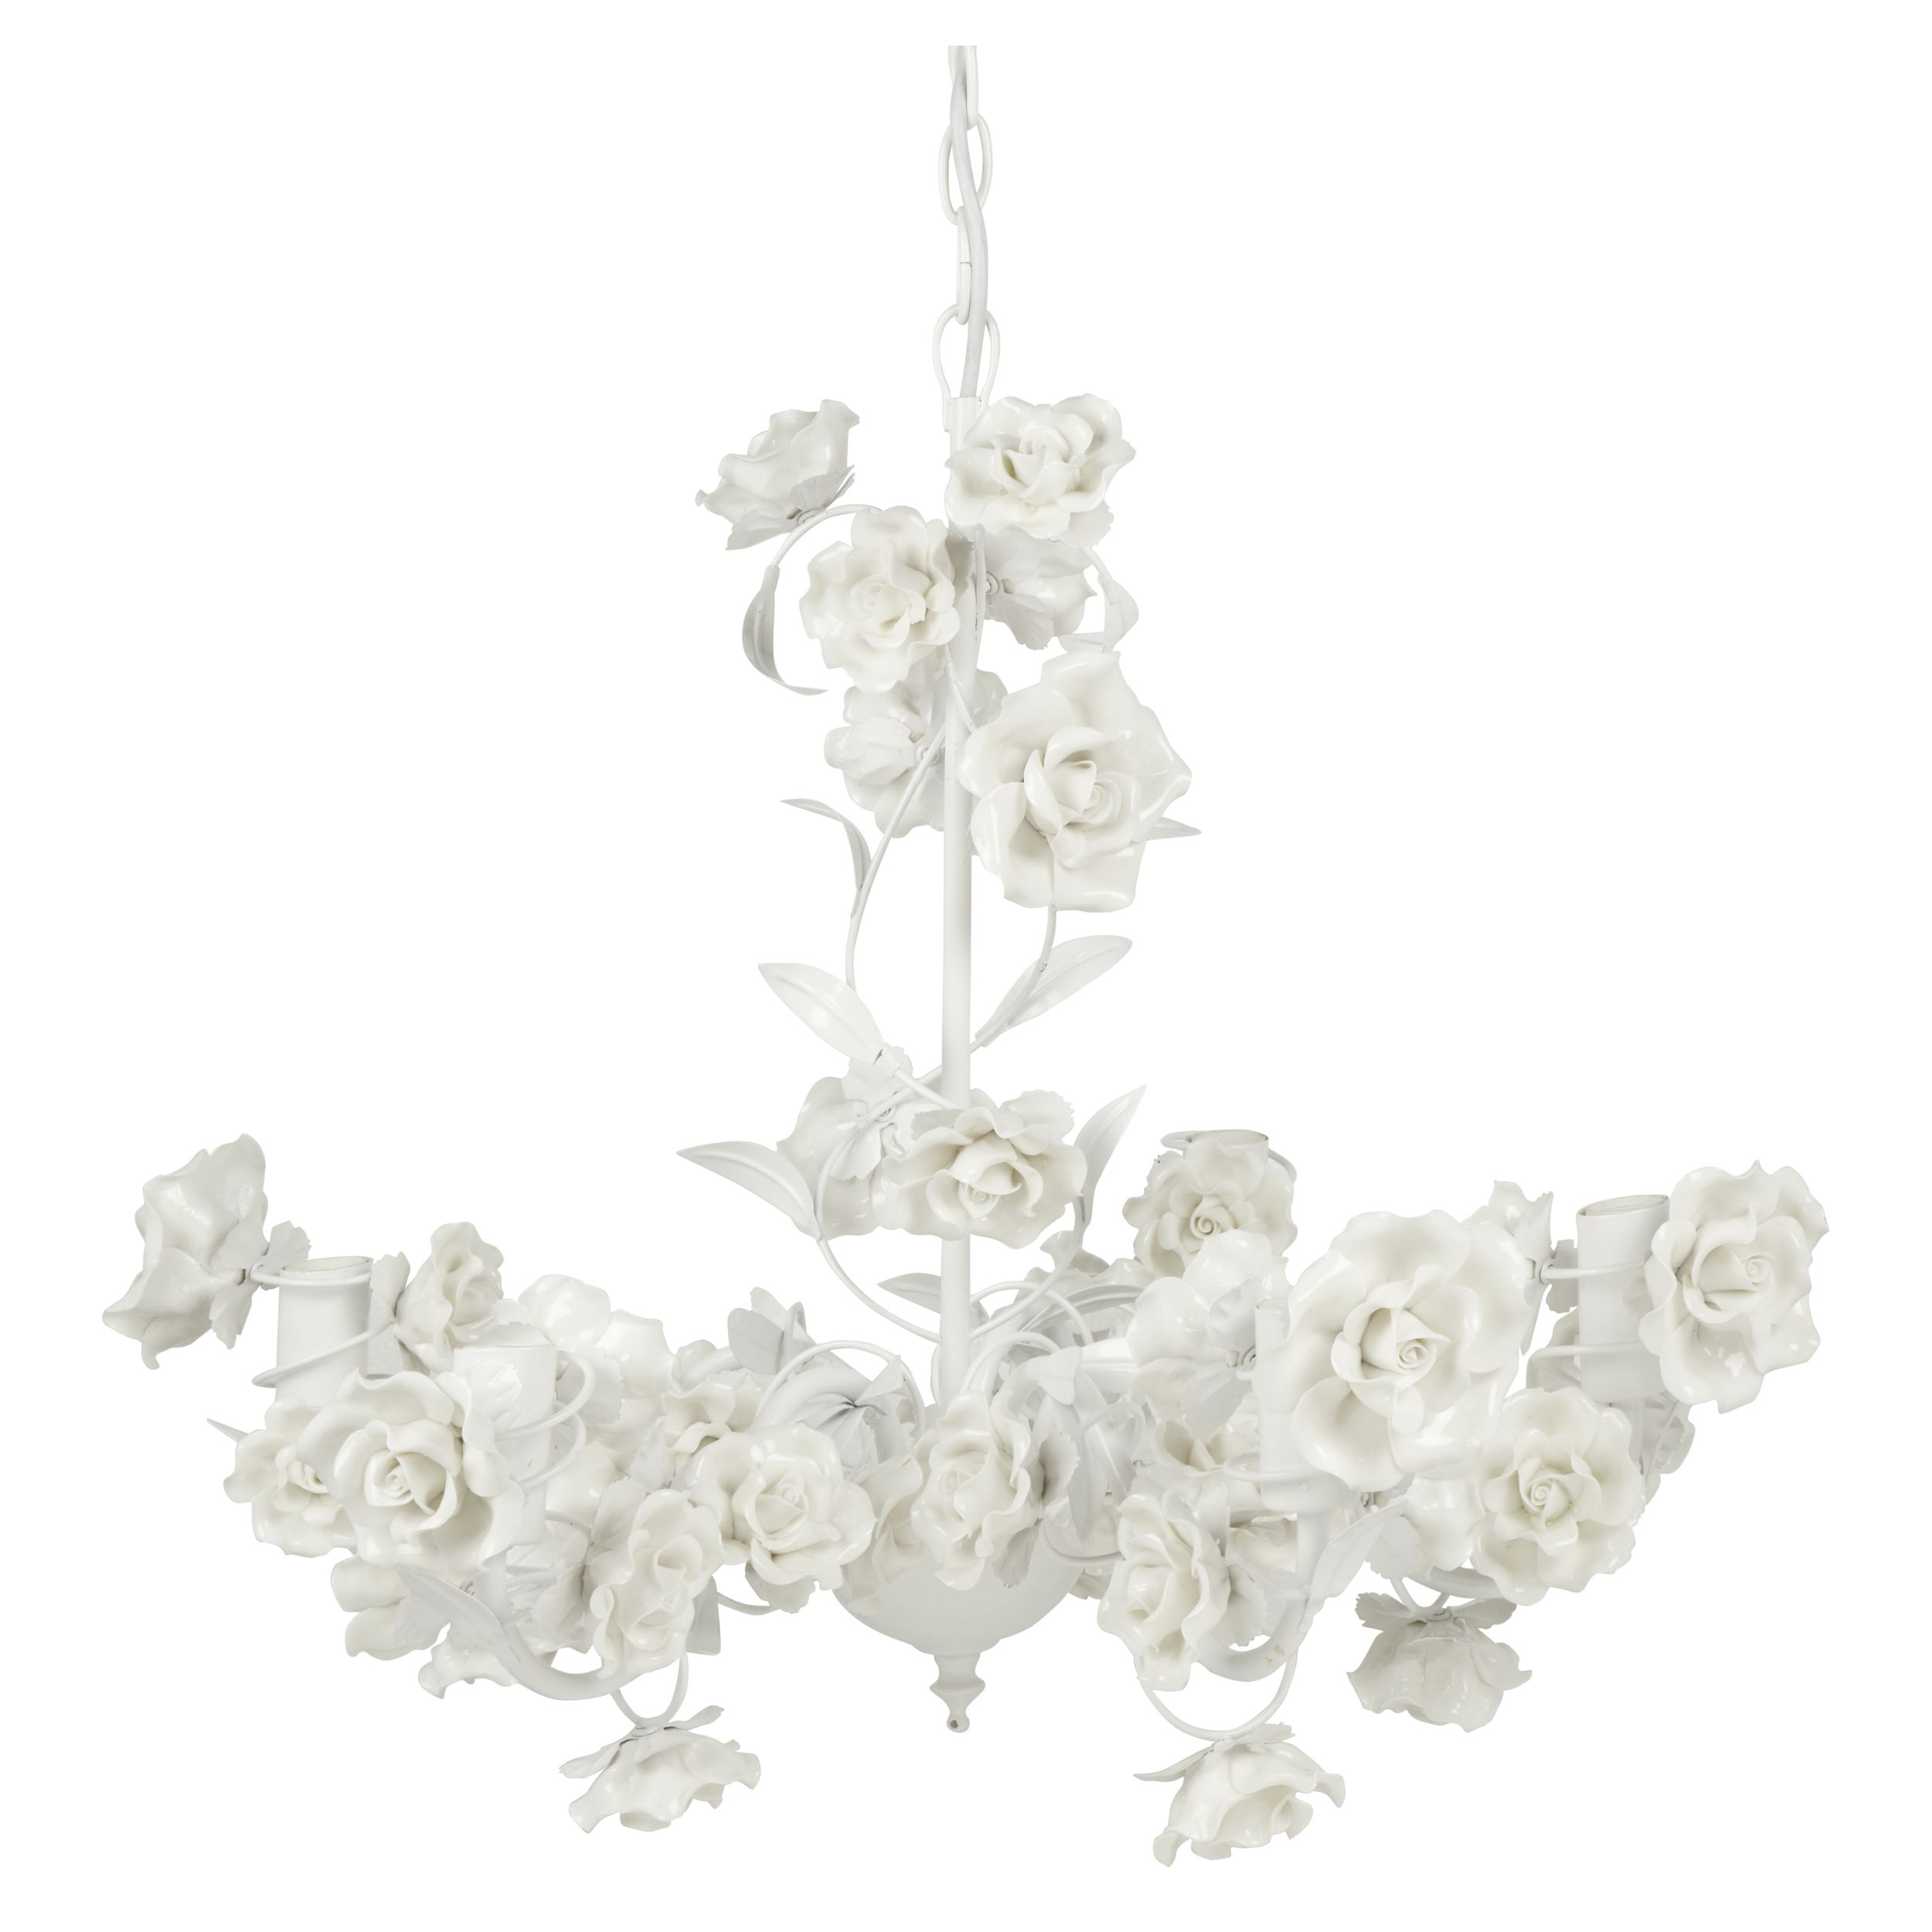 Lauraashleyss14 rose chandelier i am saving hard to buy this to go primrose chandelier in white with porcelain flowers from laura ashley arubaitofo Gallery